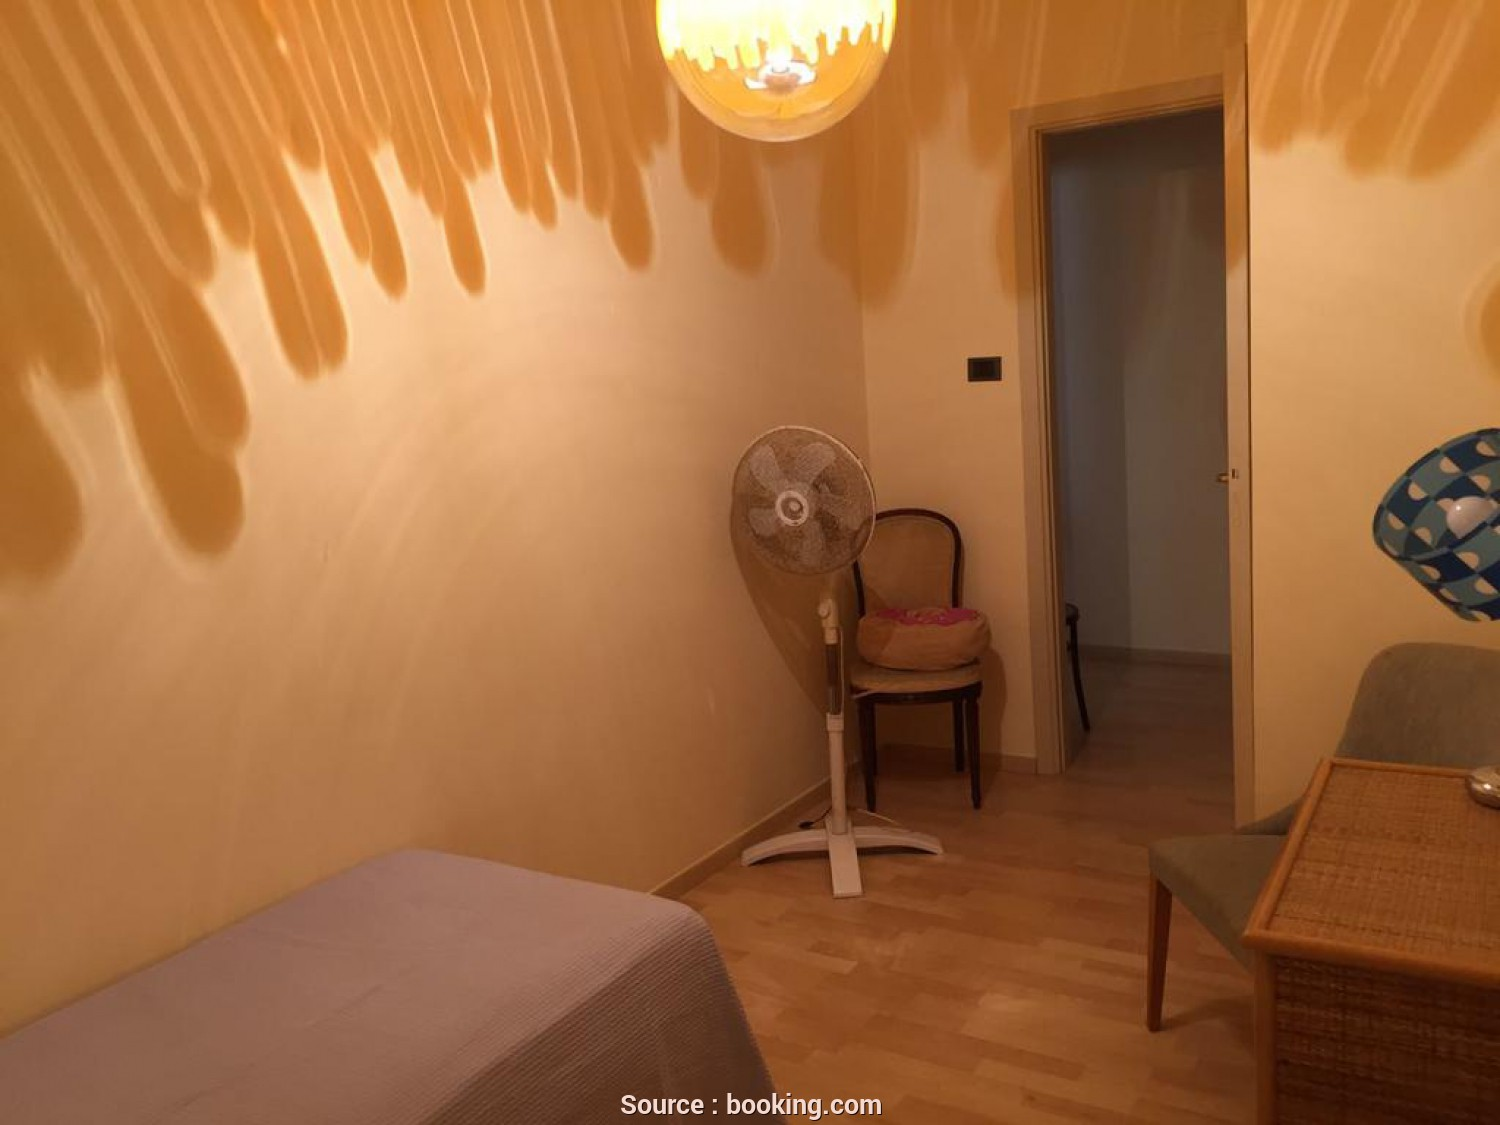 Subito.It Messina Divani, Costoso Apartment La Casa Di Antonella, Messina, Italy, Booking.Com